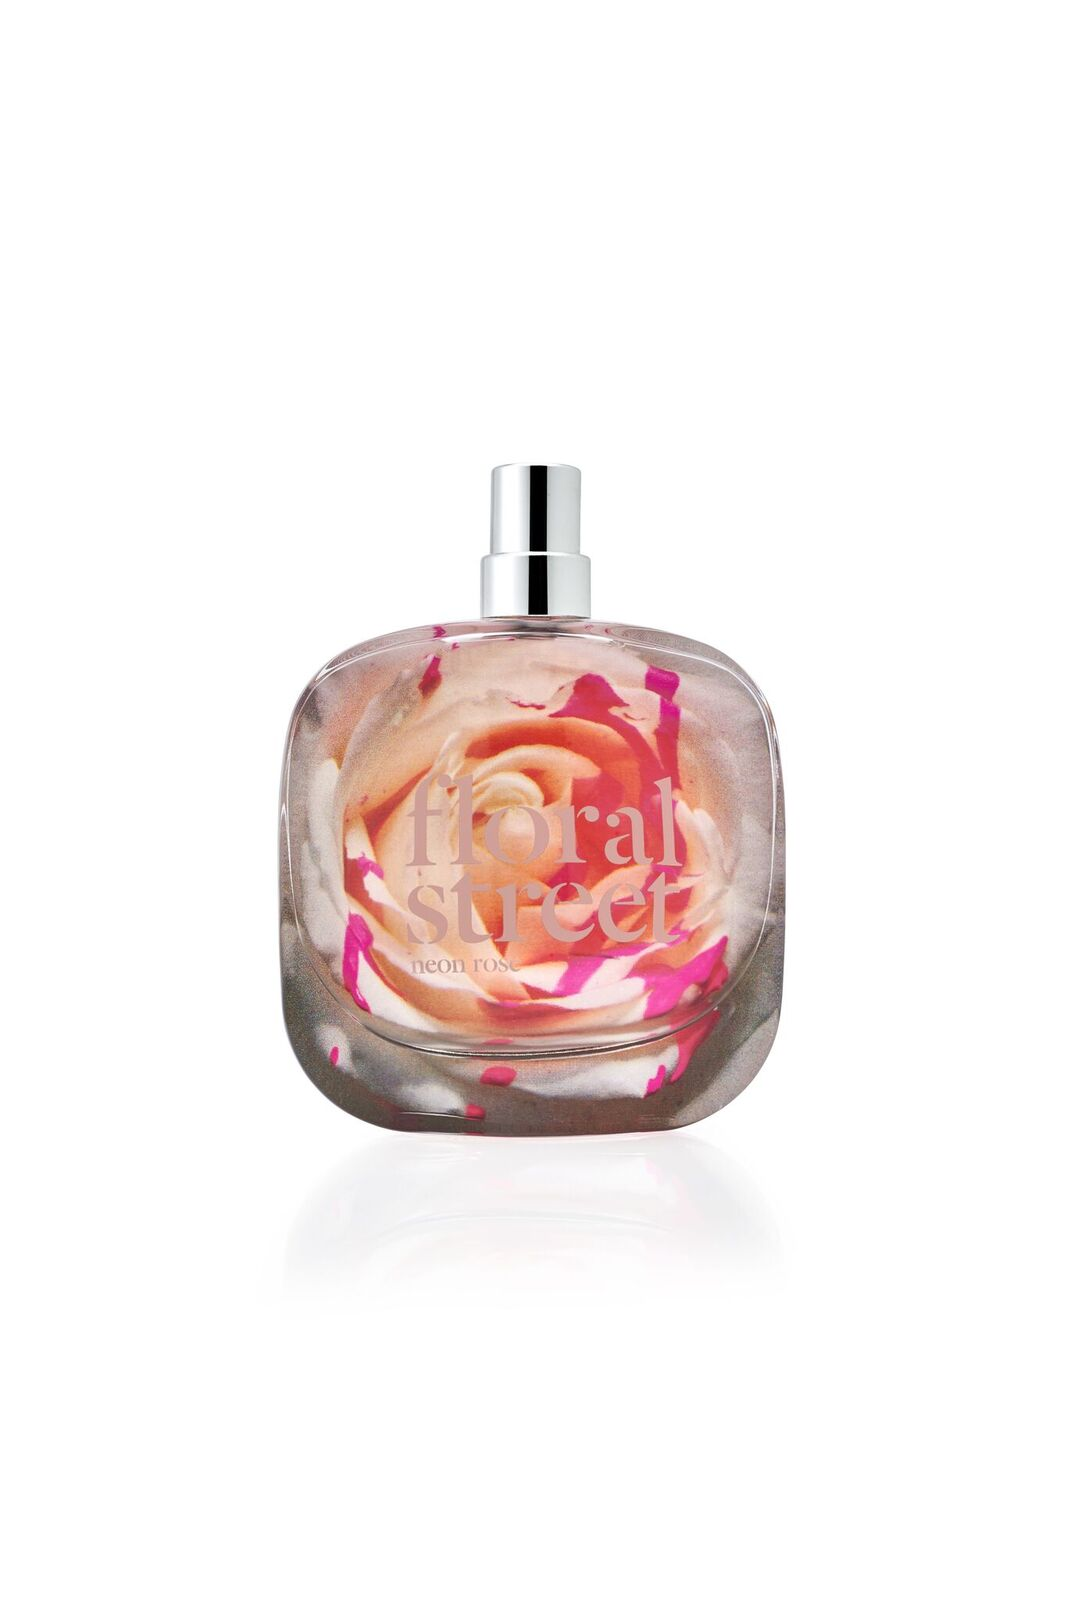 MECCA: Floral Street Neon Rose